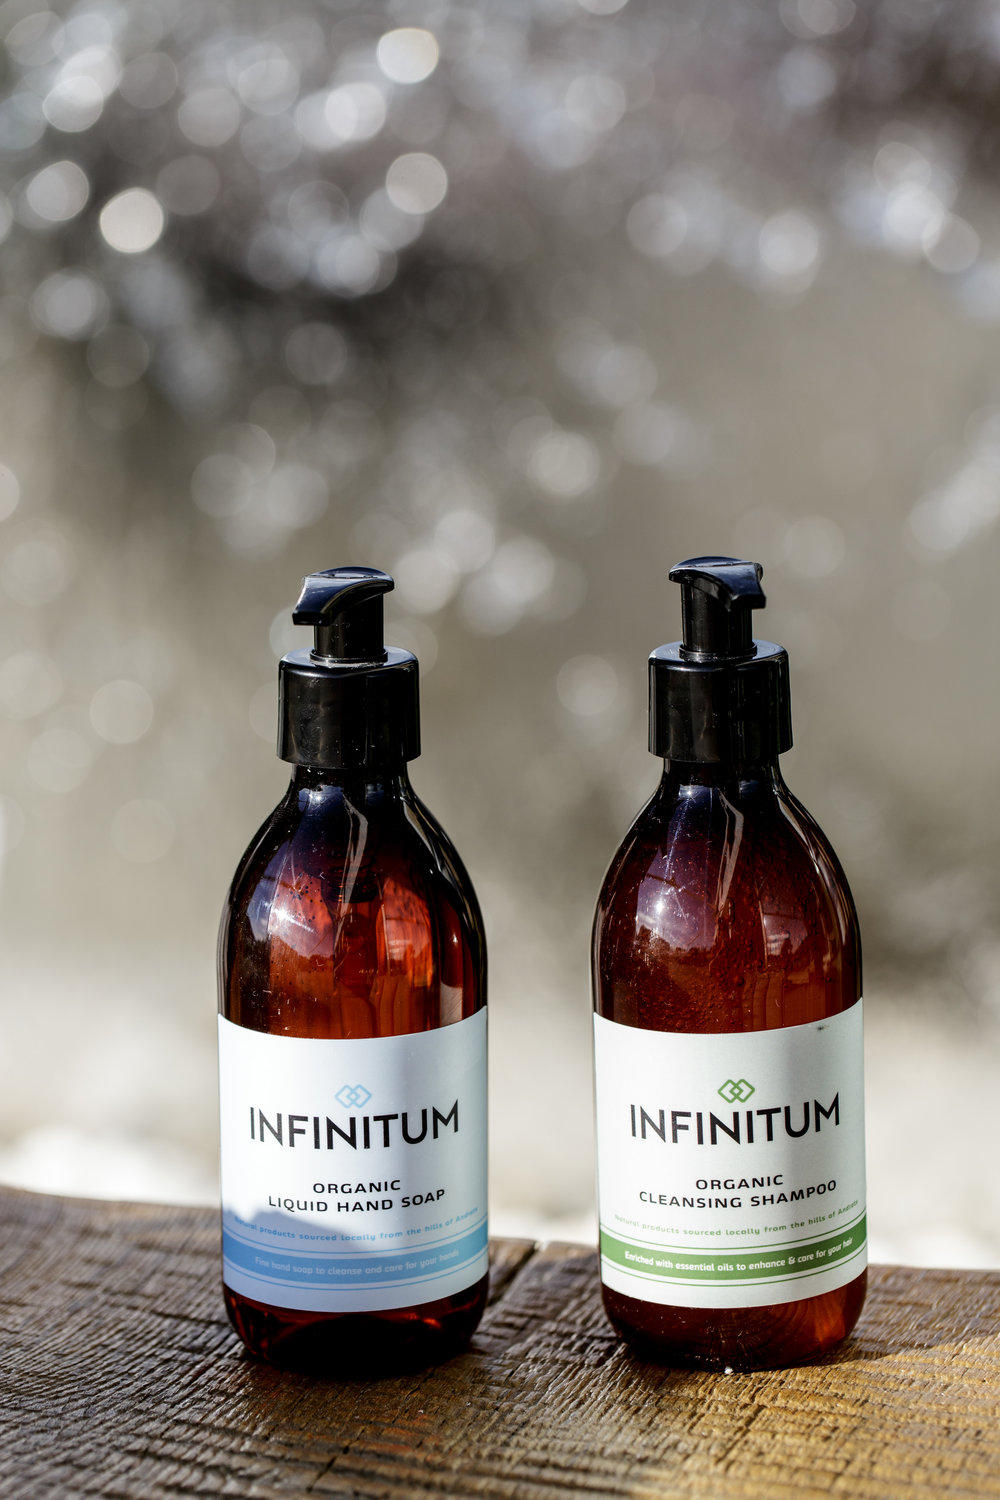 - Toiletries.We provide complimentary organic Infinitum Toiletries, locally sourced from the hills above Port D'Andratx.